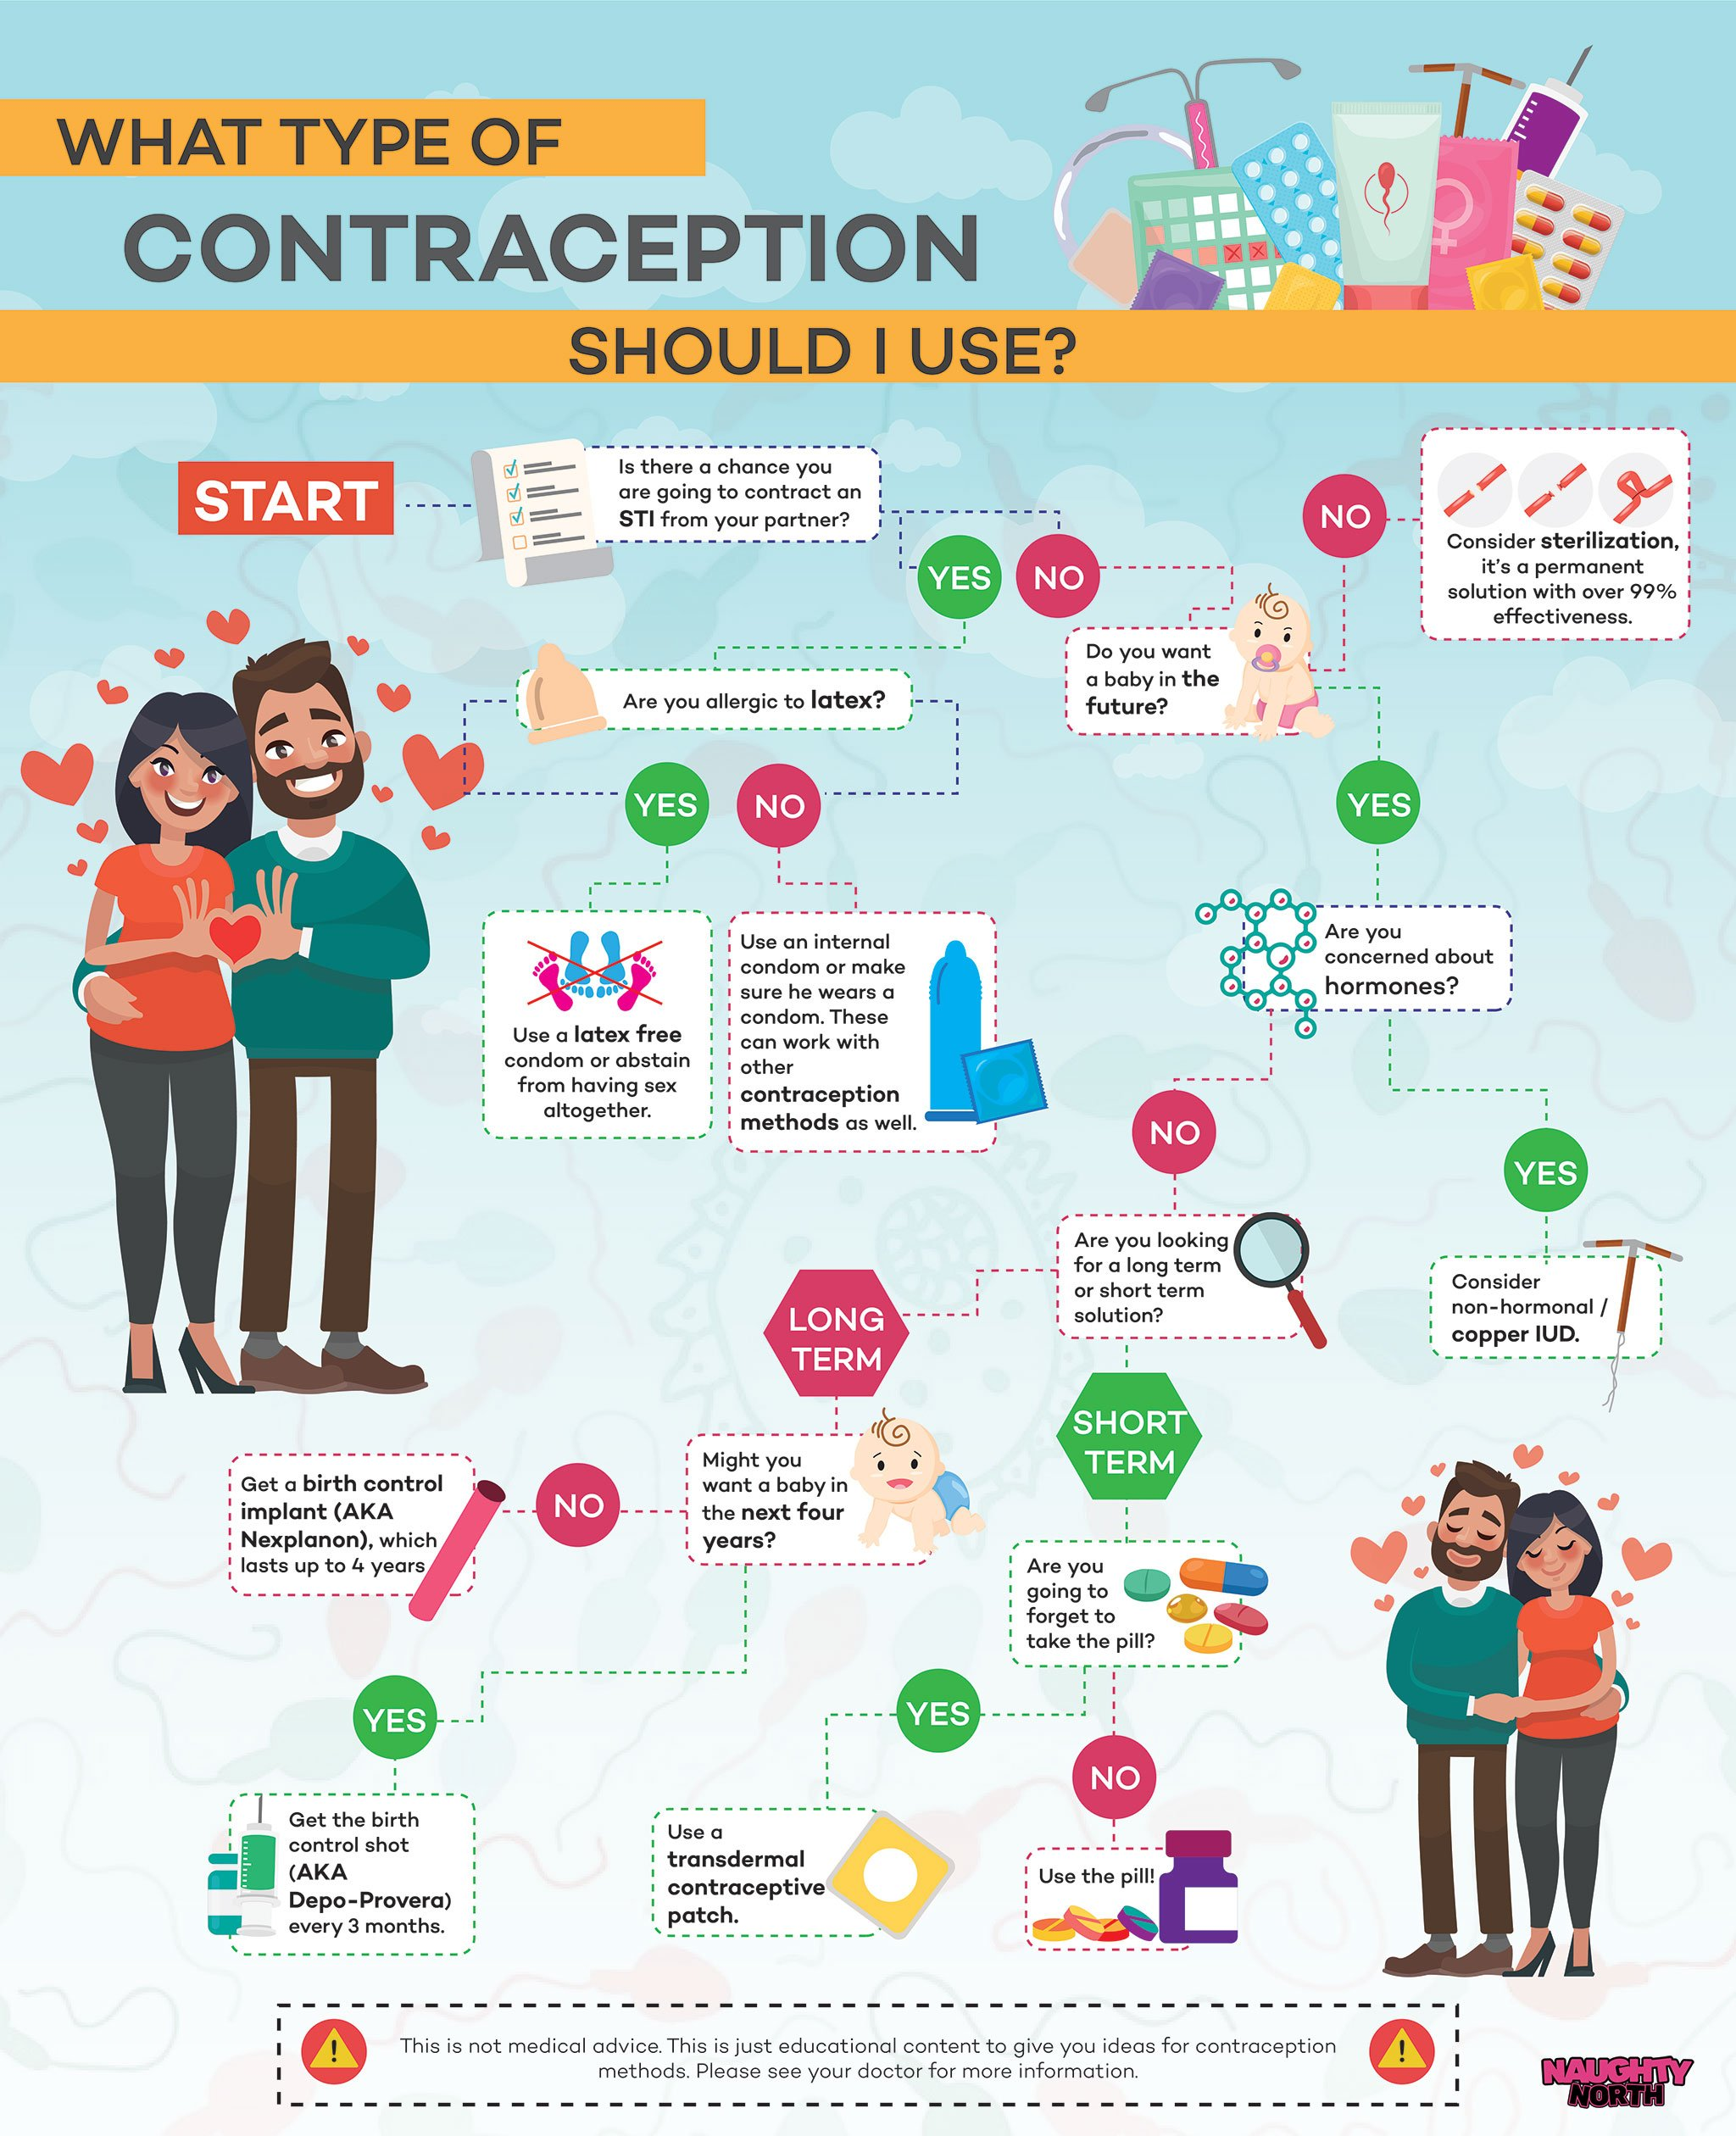 What Type of Contraception Should I Use?